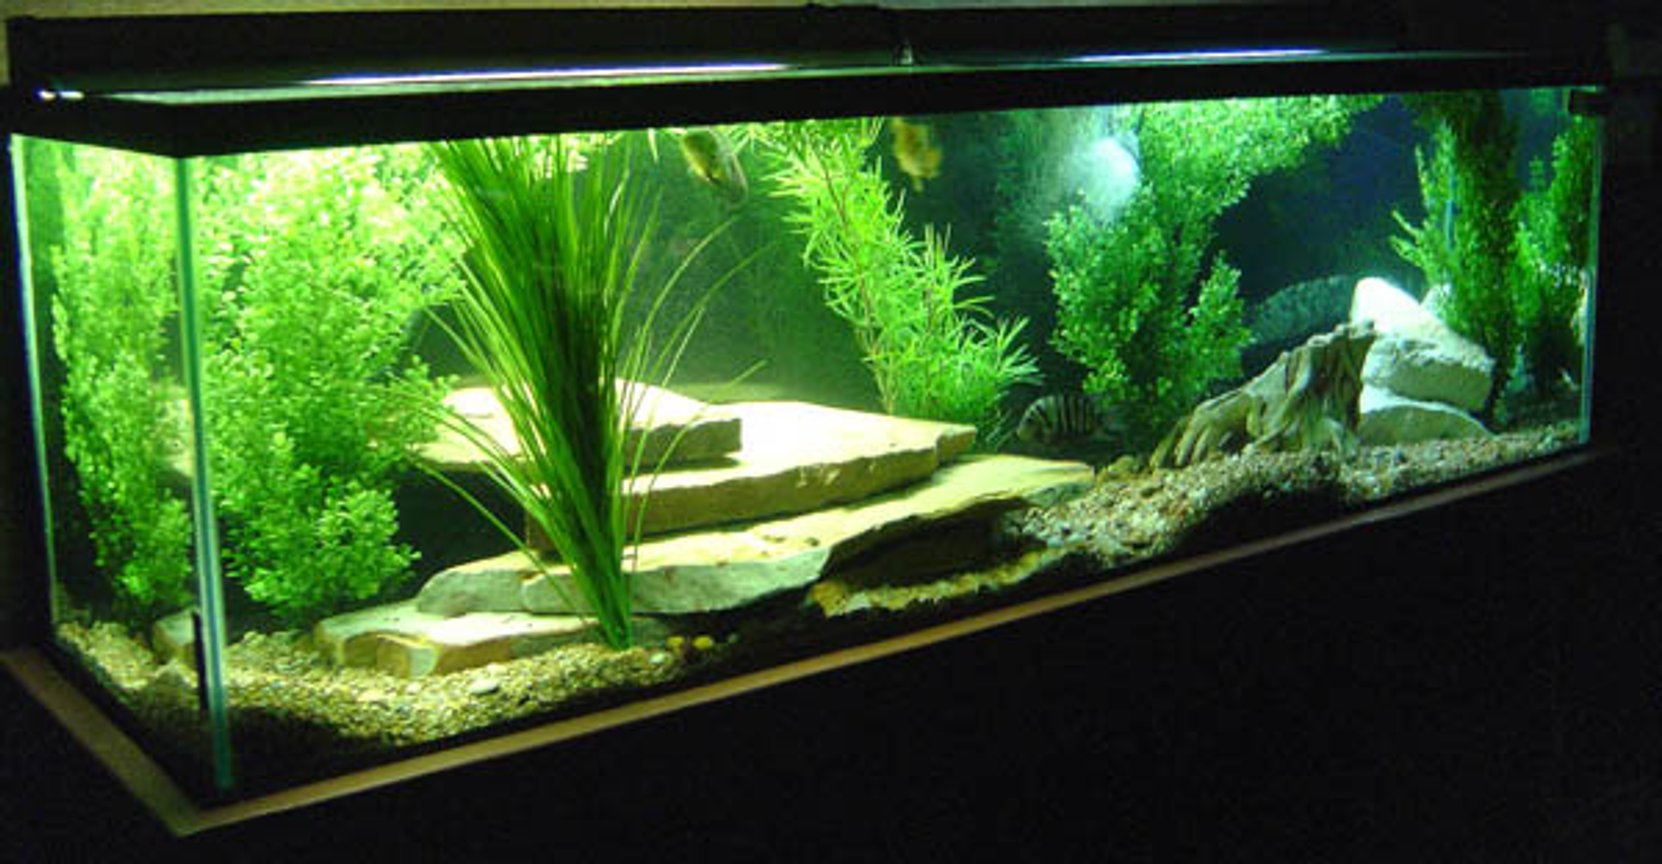 130 gallons freshwater fish tank (mostly fish and non-living decorations) - My 130 gallon tank.